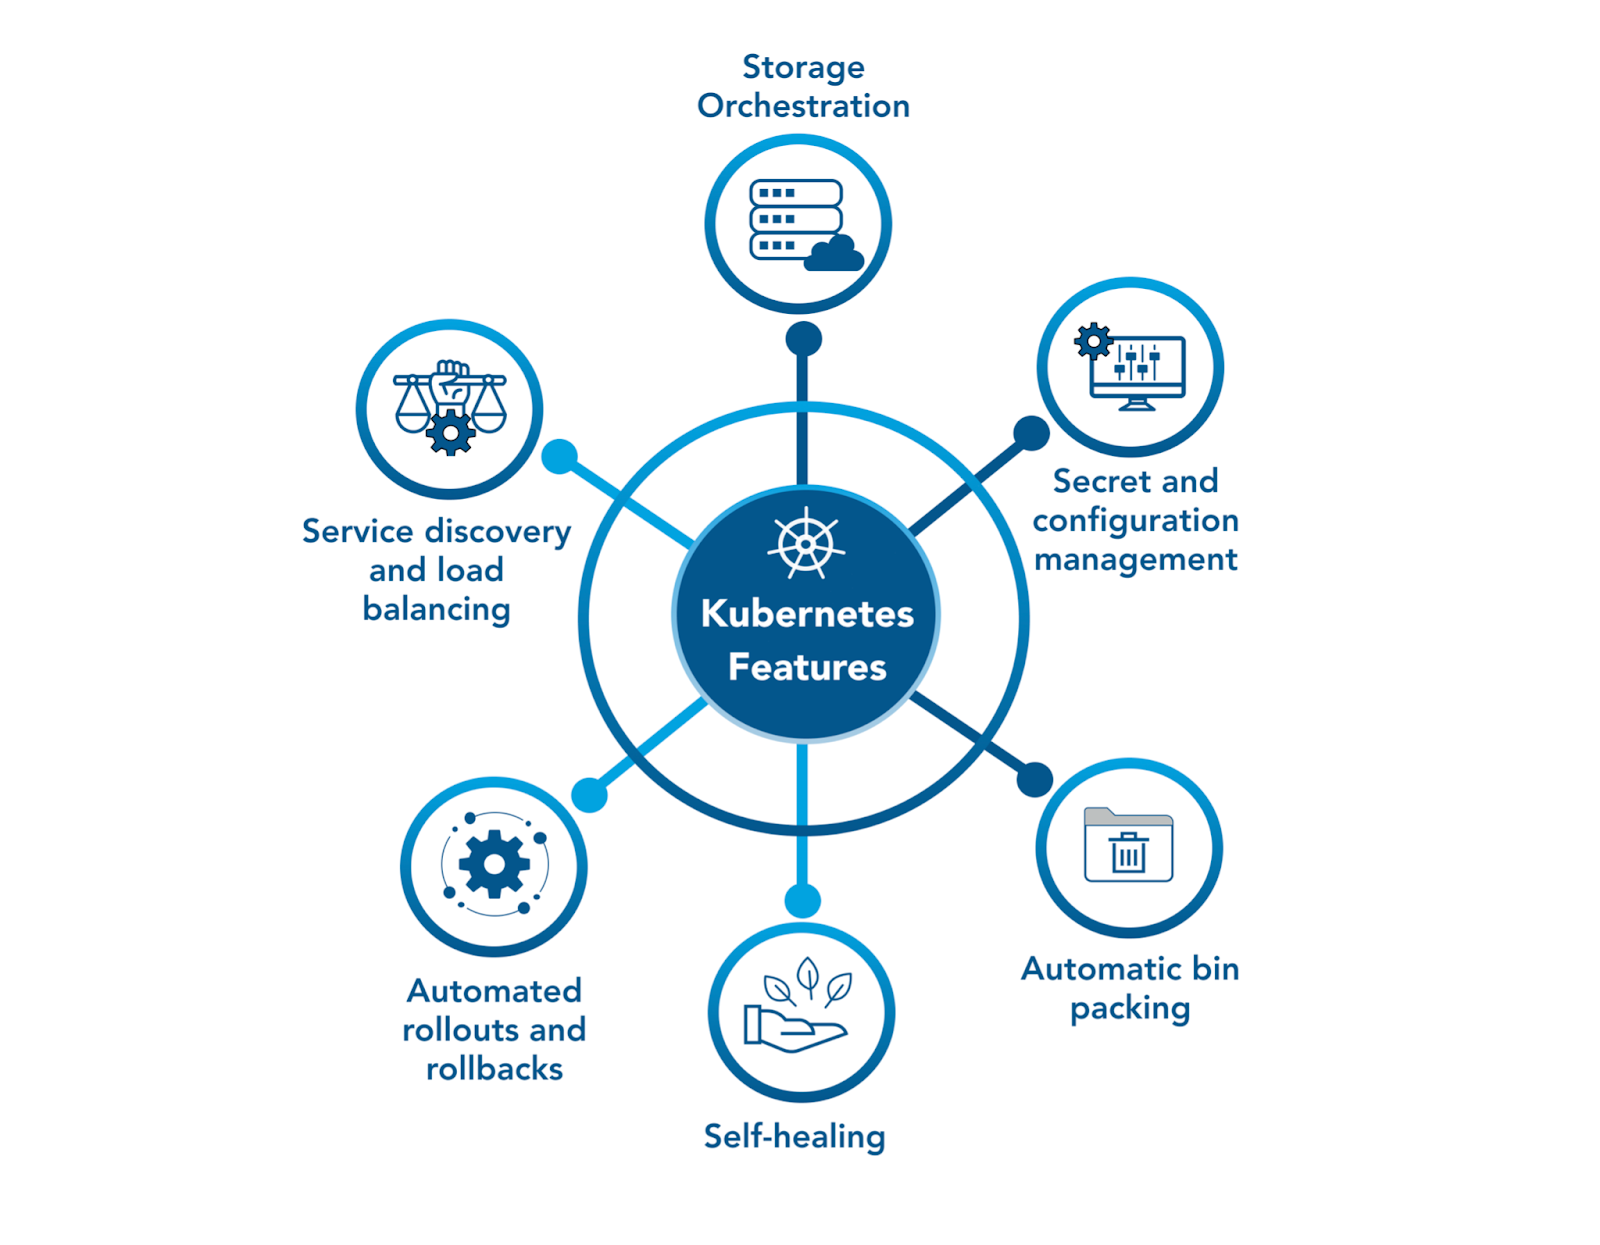 The Kubernetes features include orchestration, secret management, bin packing, self-healing, rollbacks, and load balancing.